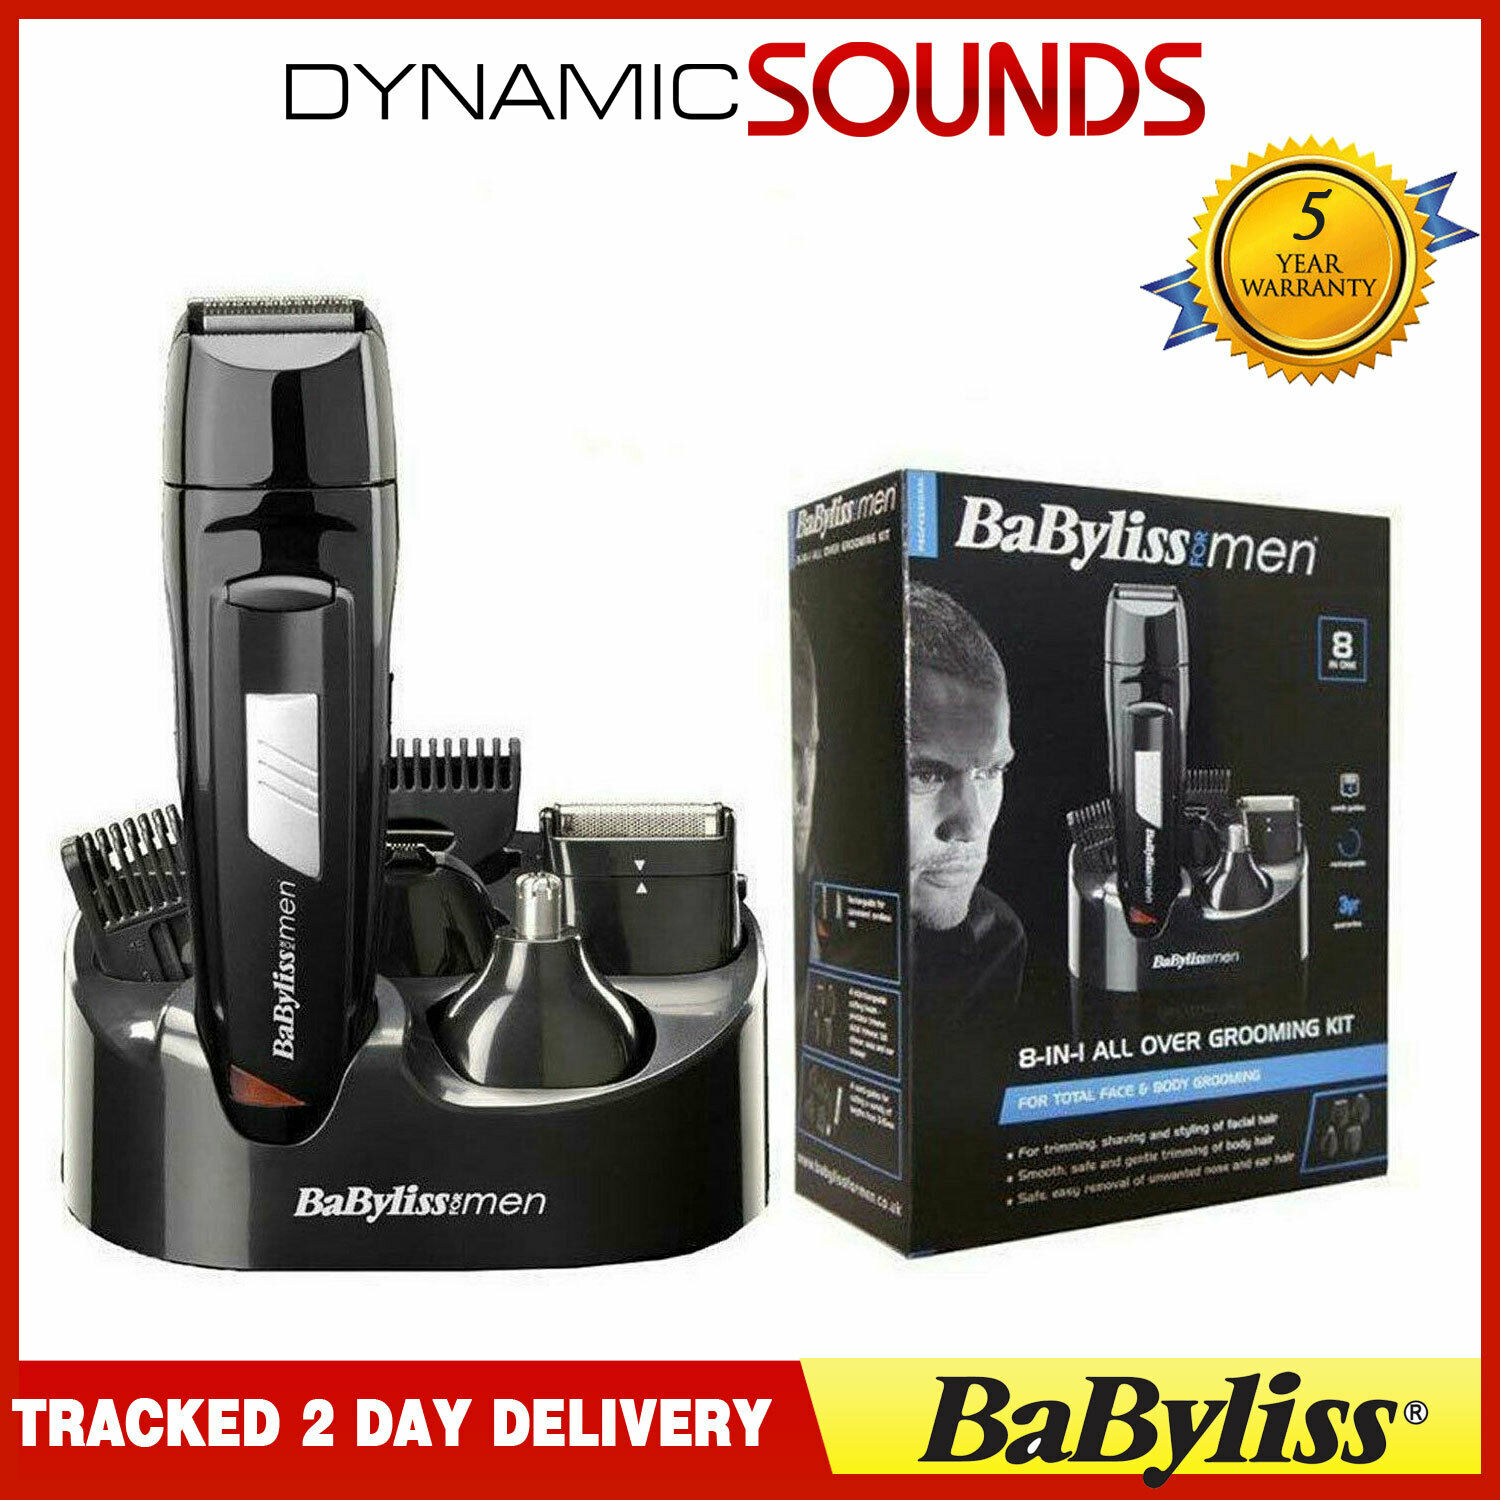 babyliss men 8 in 1 grooming kit cordless body hair clipper beard trimmer 7056cu. Black Bedroom Furniture Sets. Home Design Ideas